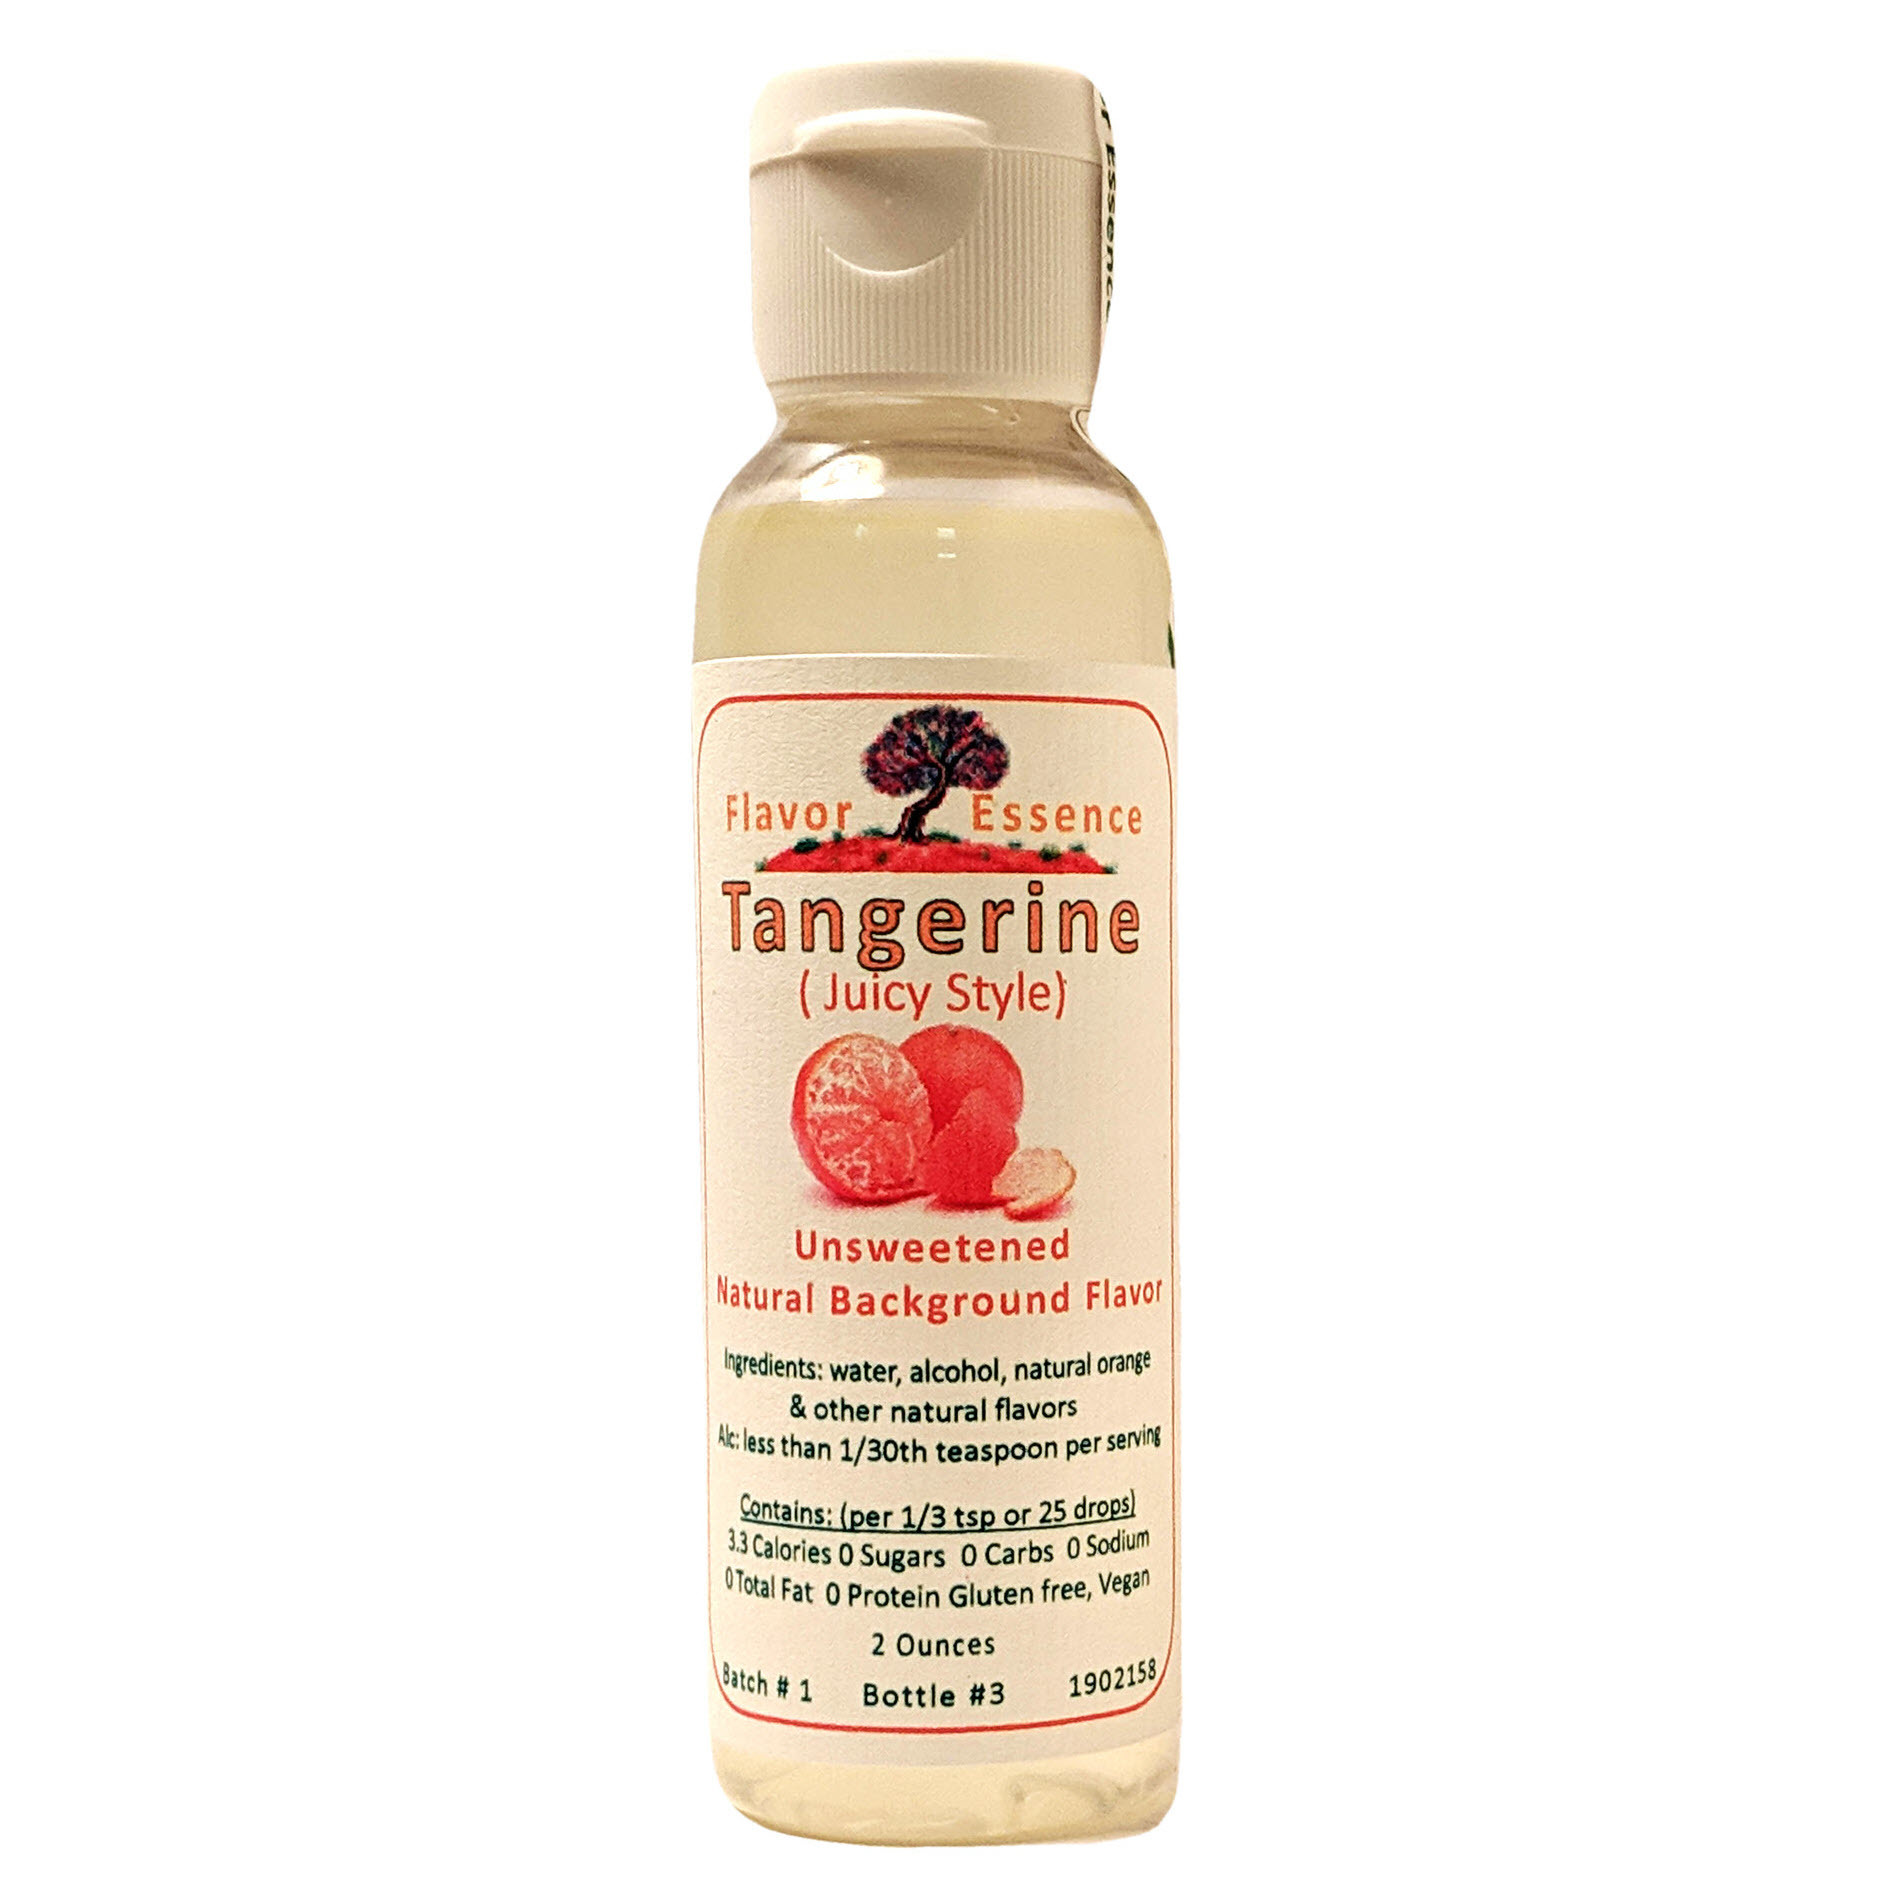 TANGERINE (Juicy Style) Unsweetened Natural Flavoring TANG